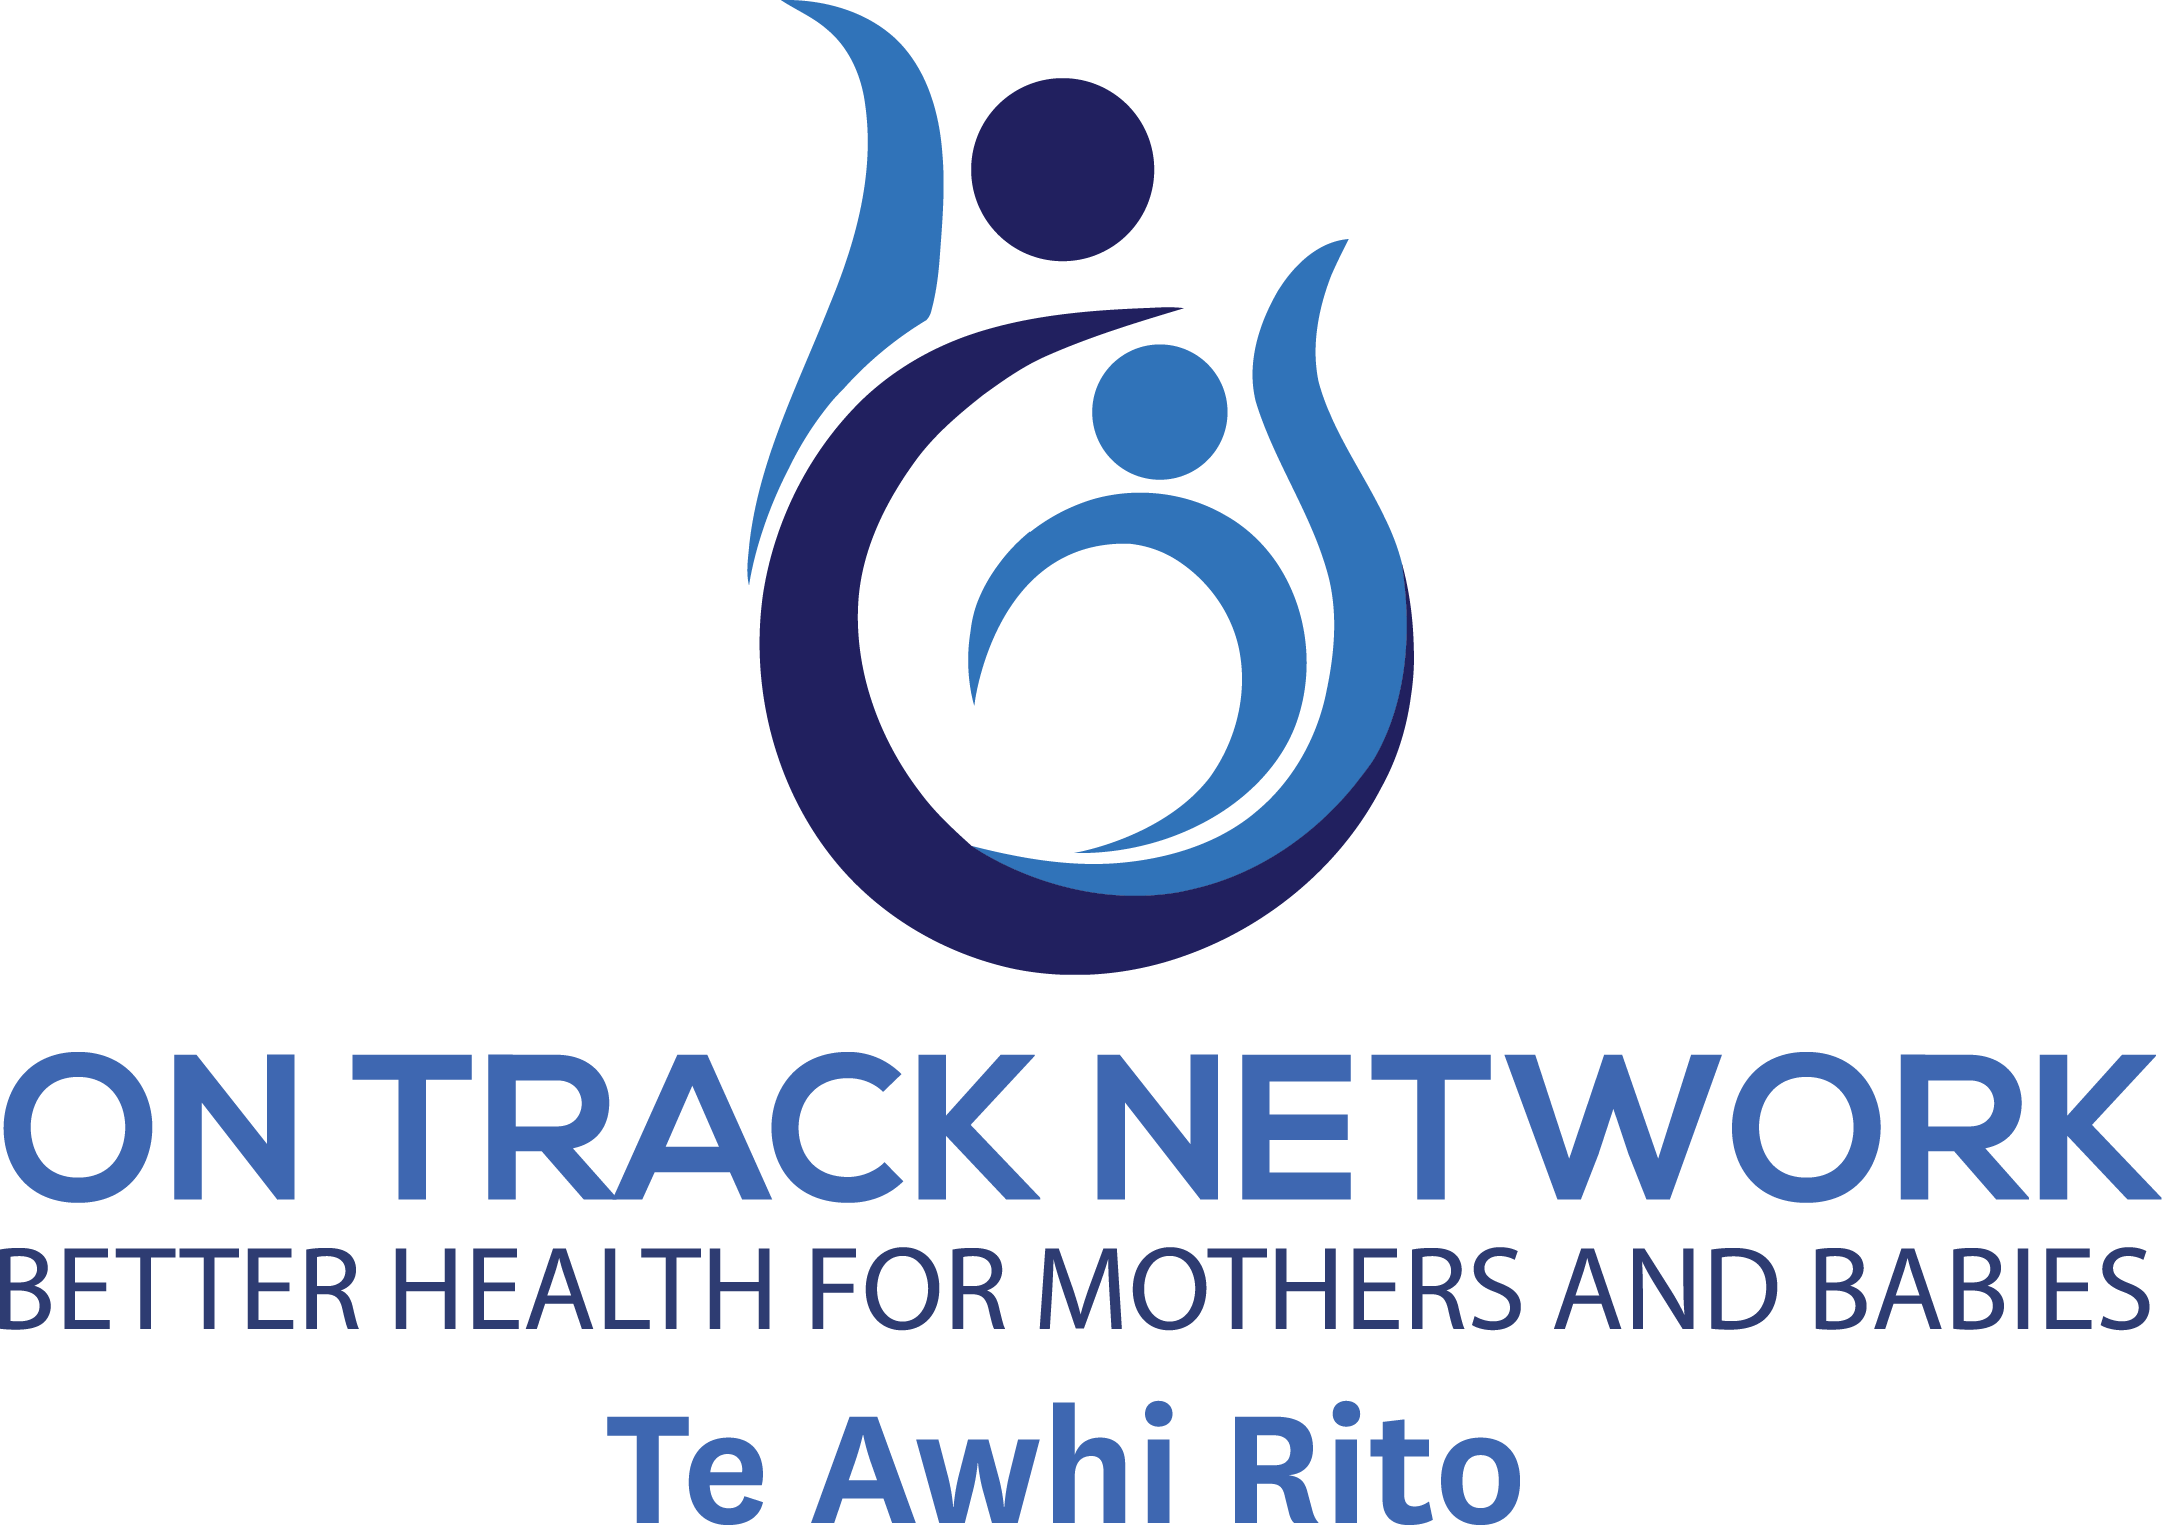 ON TRACK Network11 Te Awhi Rito